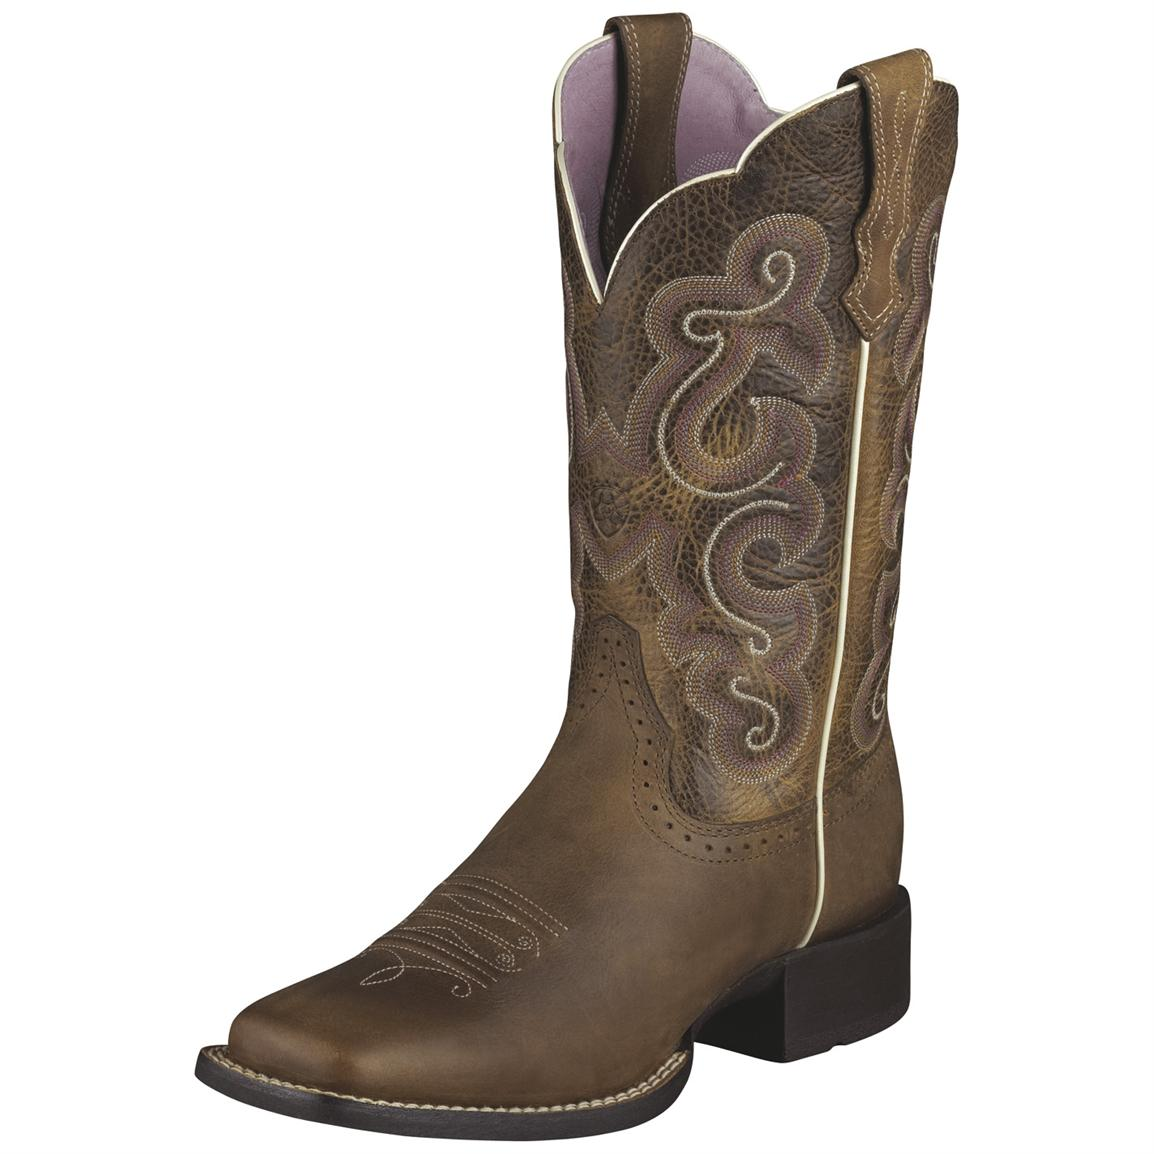 Women's Ariat® 11 inch Quickdraw Western Boots, Brown